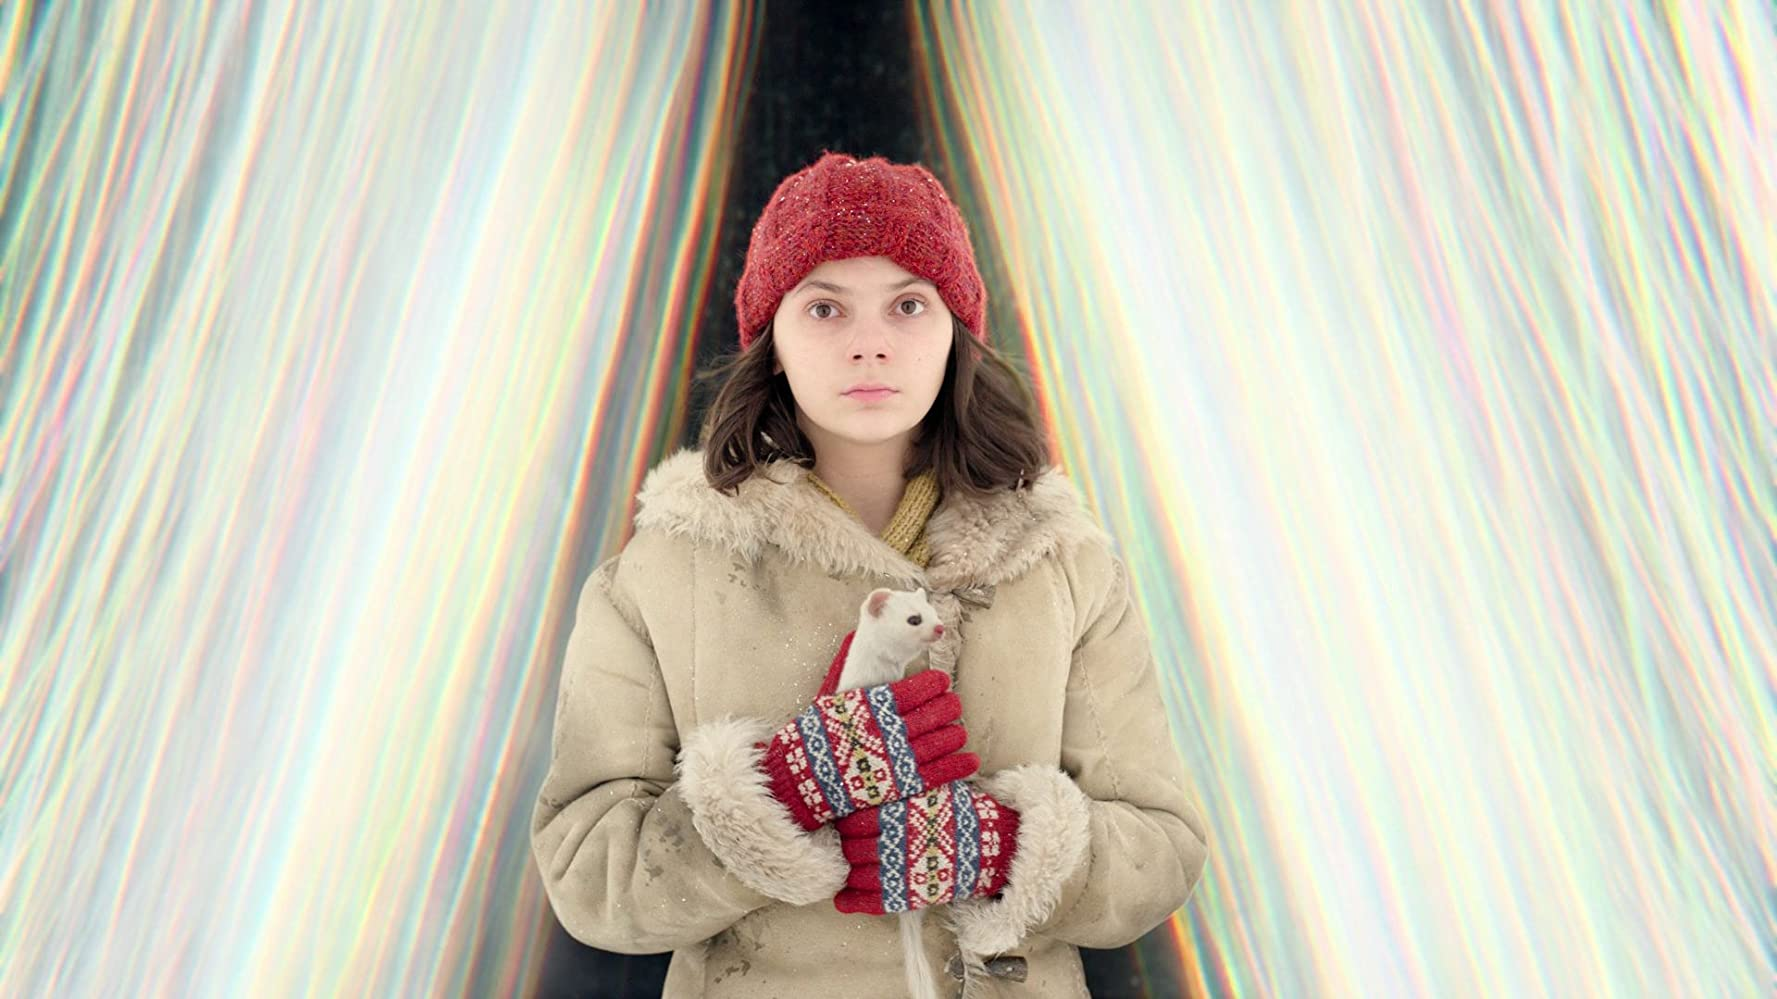 Dafne Keen in His Dark Materials (2019)